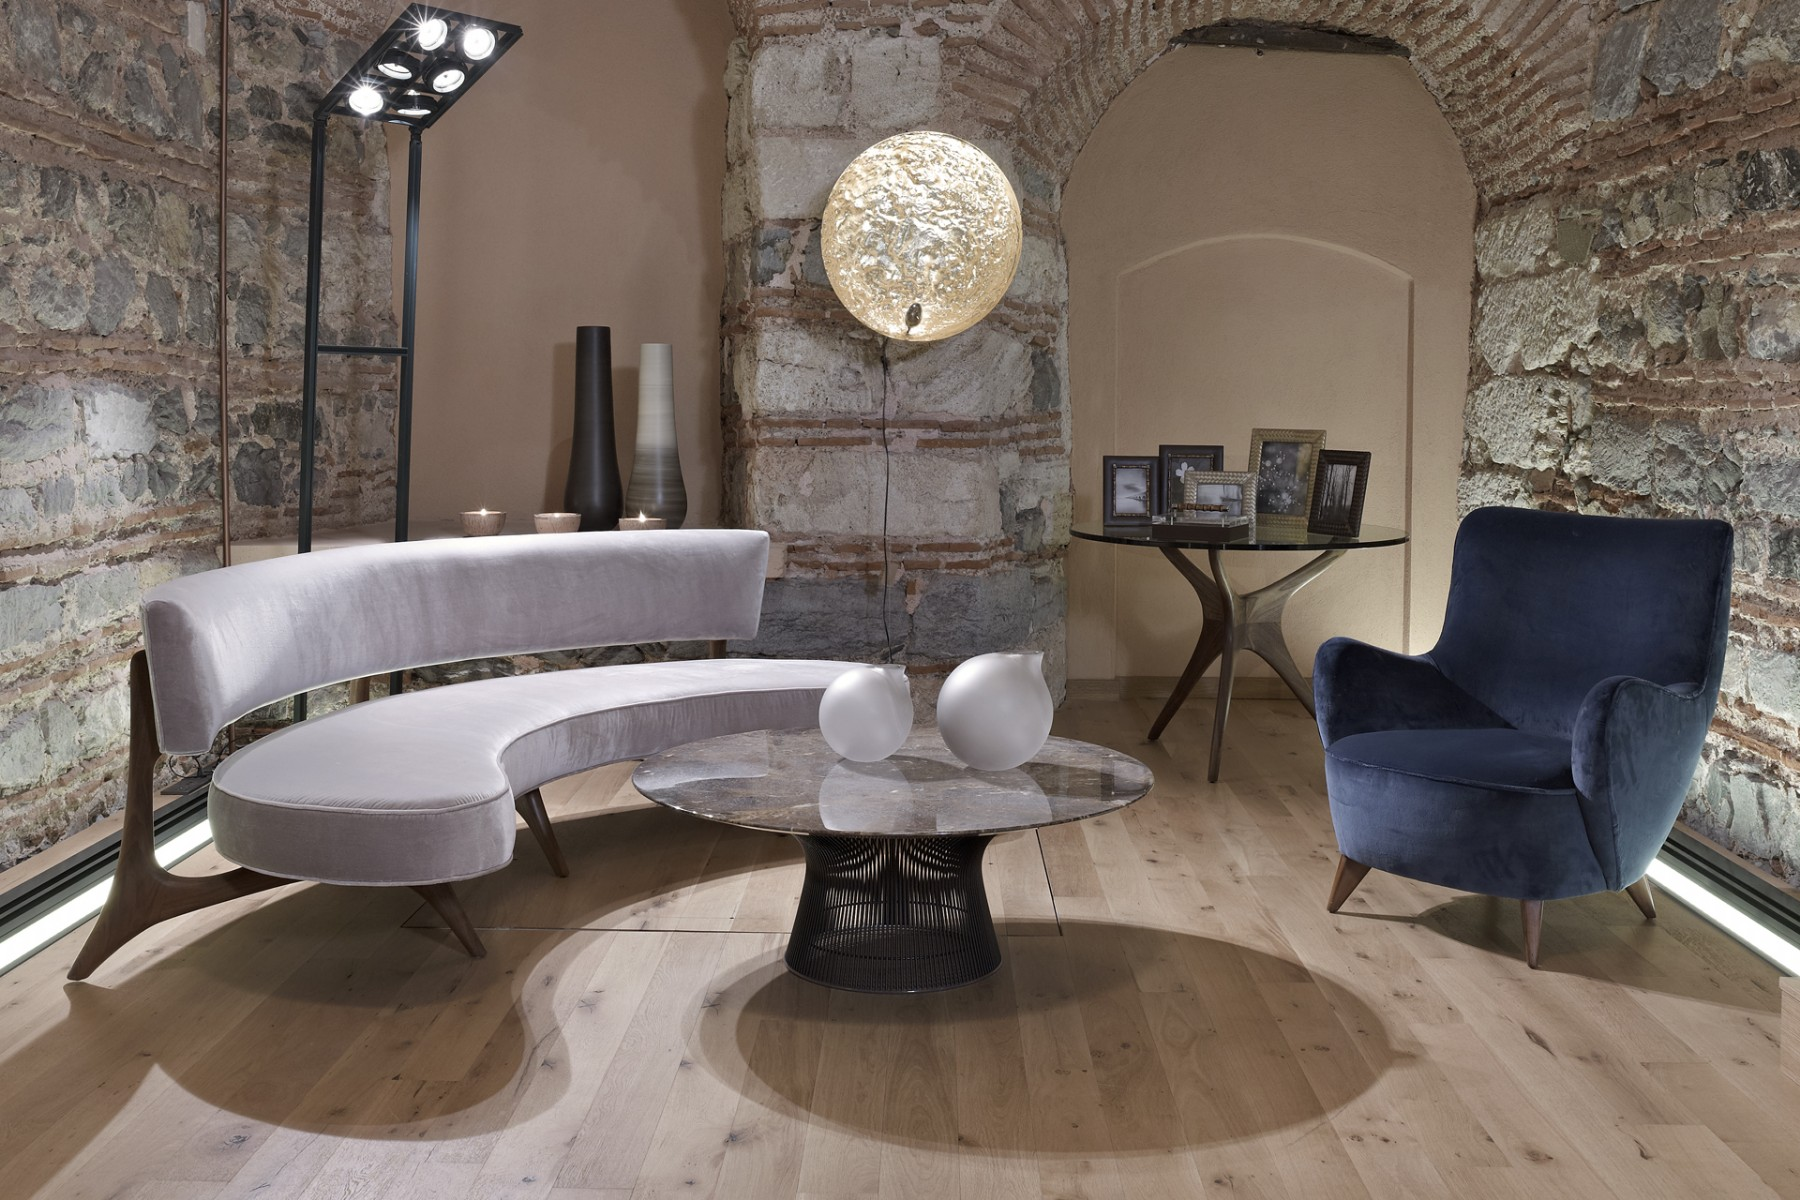 A Collection Of Kagan Furniture, Paired With A Warren Platner Coffee Table